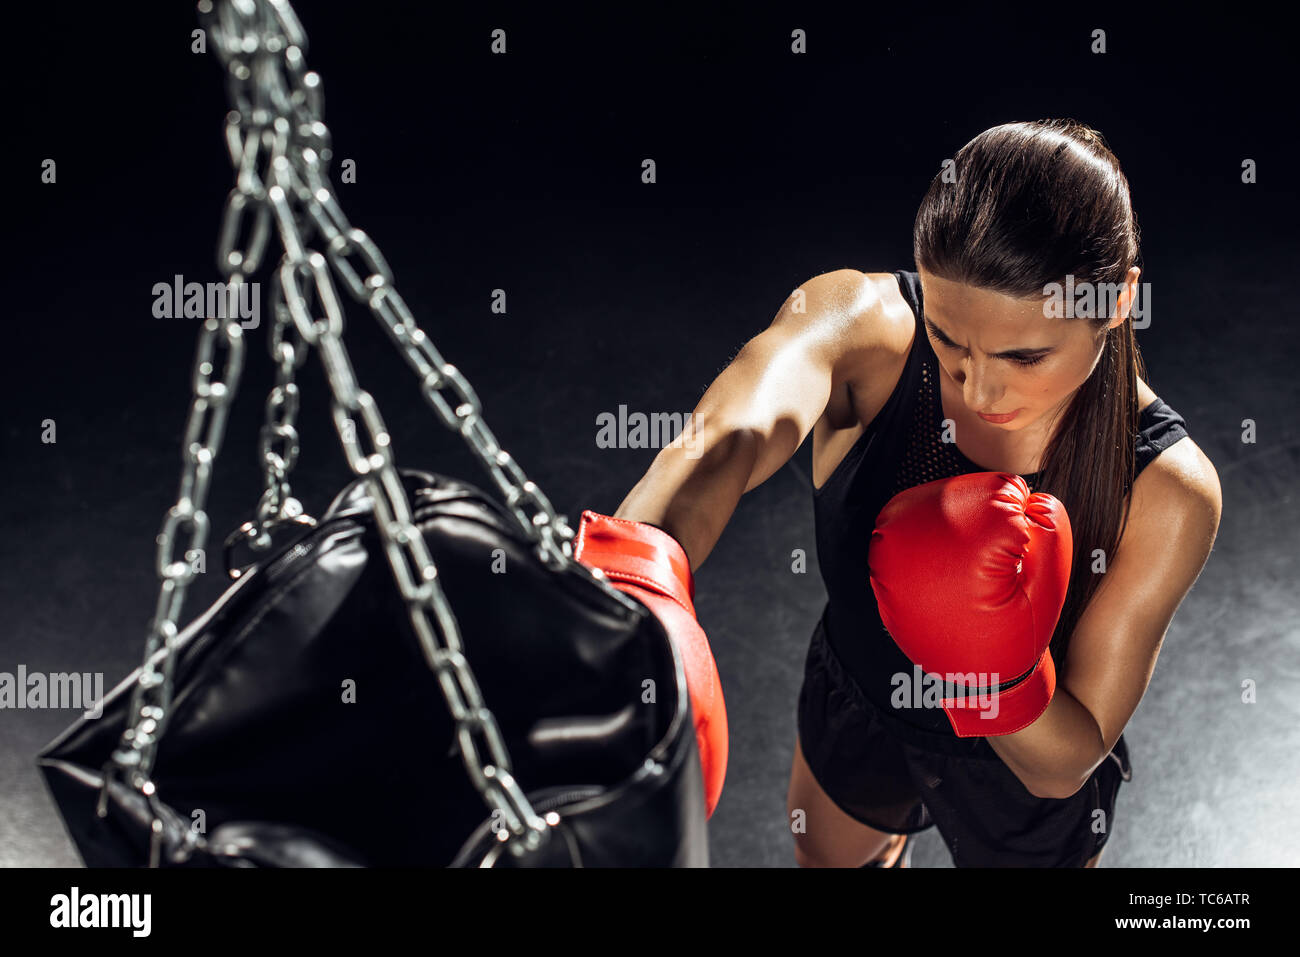 High angle view of boxer in red boxing gloves training with punching bag - Stock Image